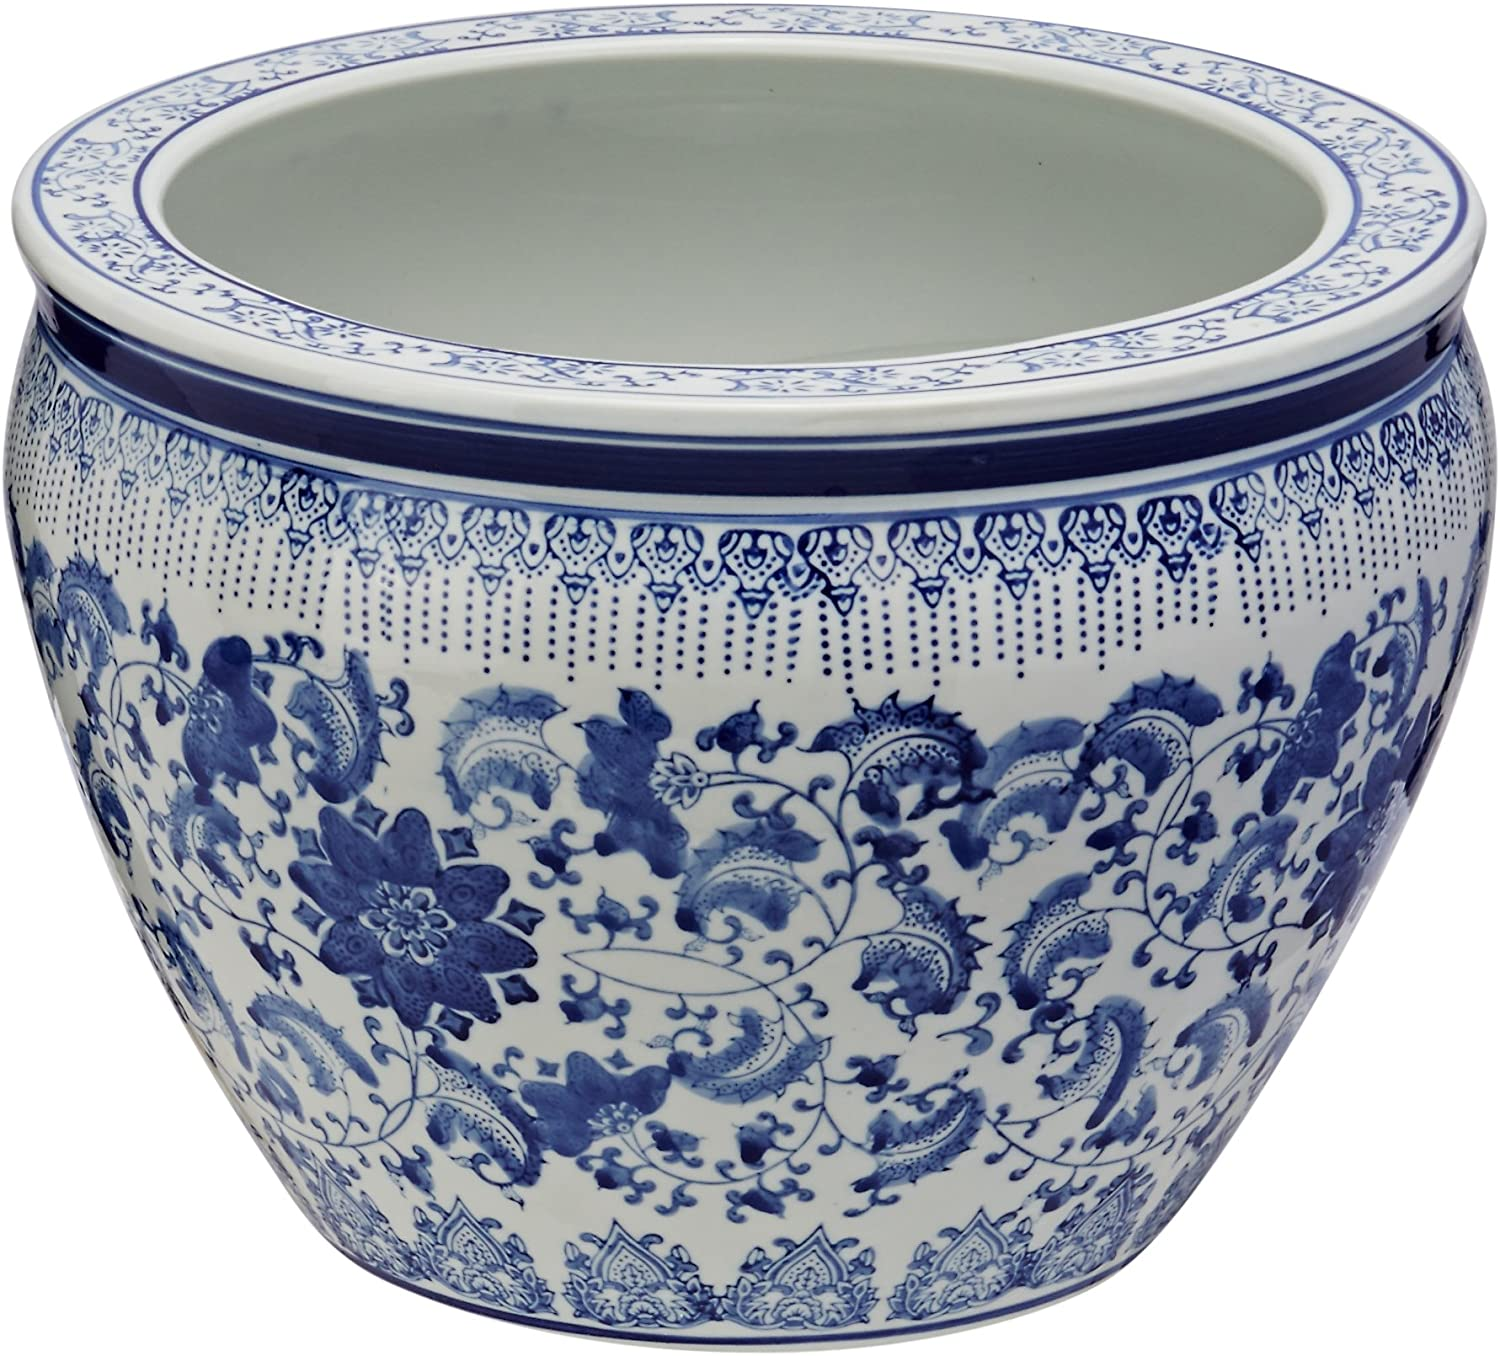 14-Inch Fine Export Chinese Porcelain Fishbowl Oriental Furniture Classic Original Authentic Ming Blue and White Floral Design